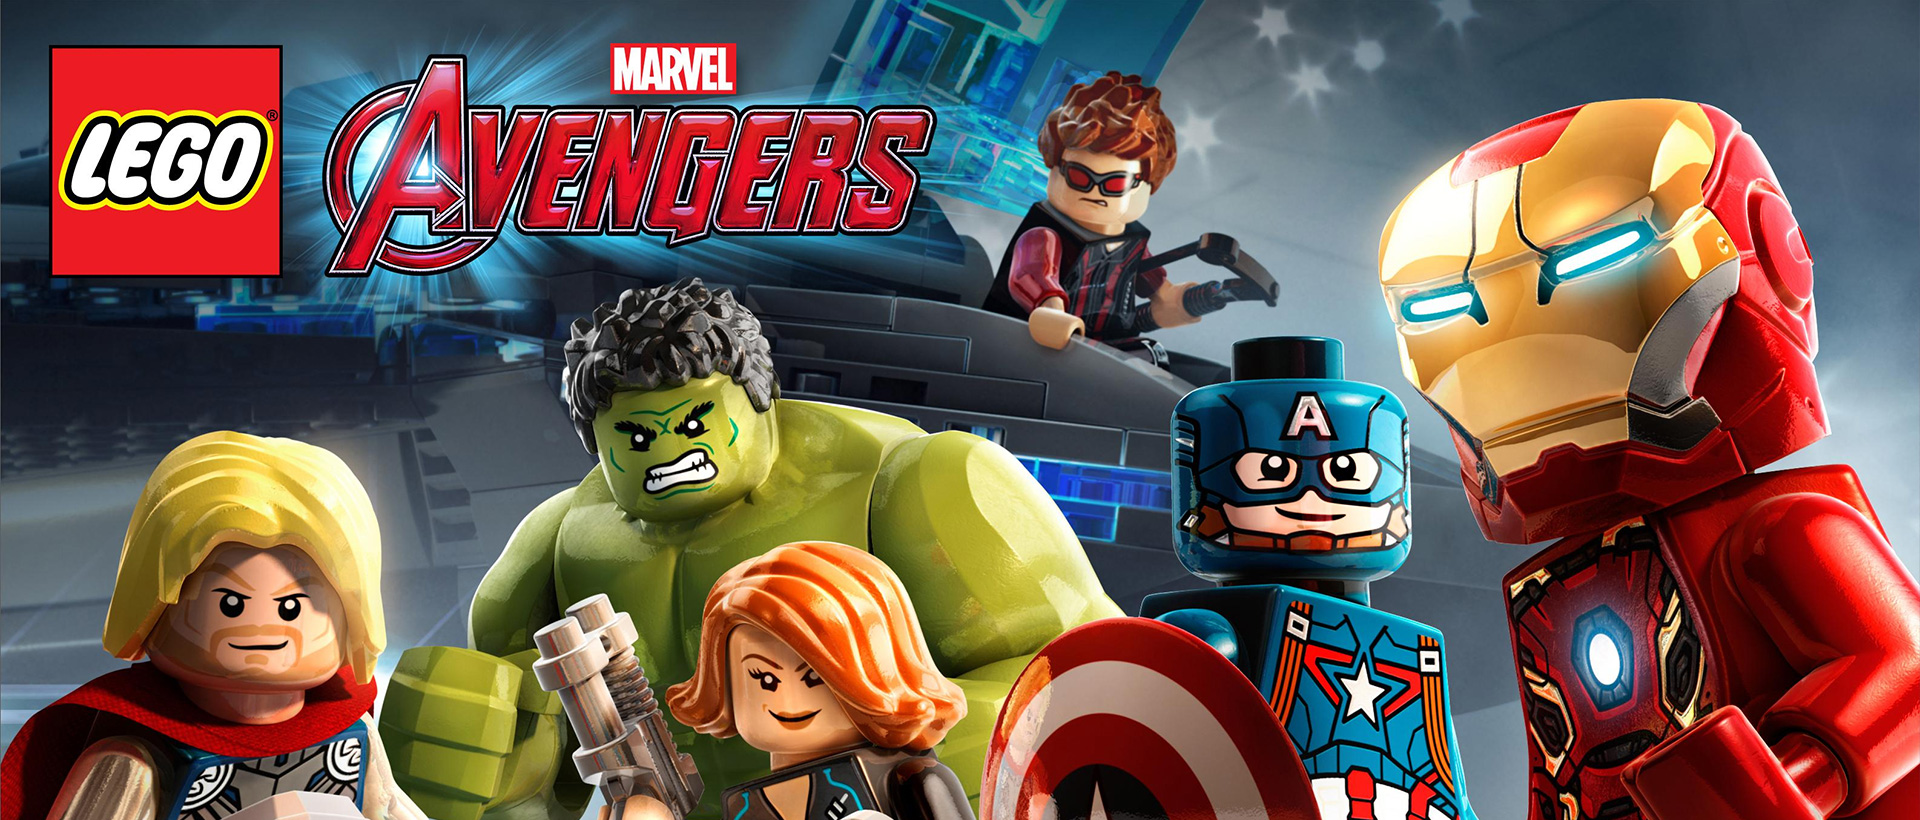 View more info on LEGO Marvels Avengers